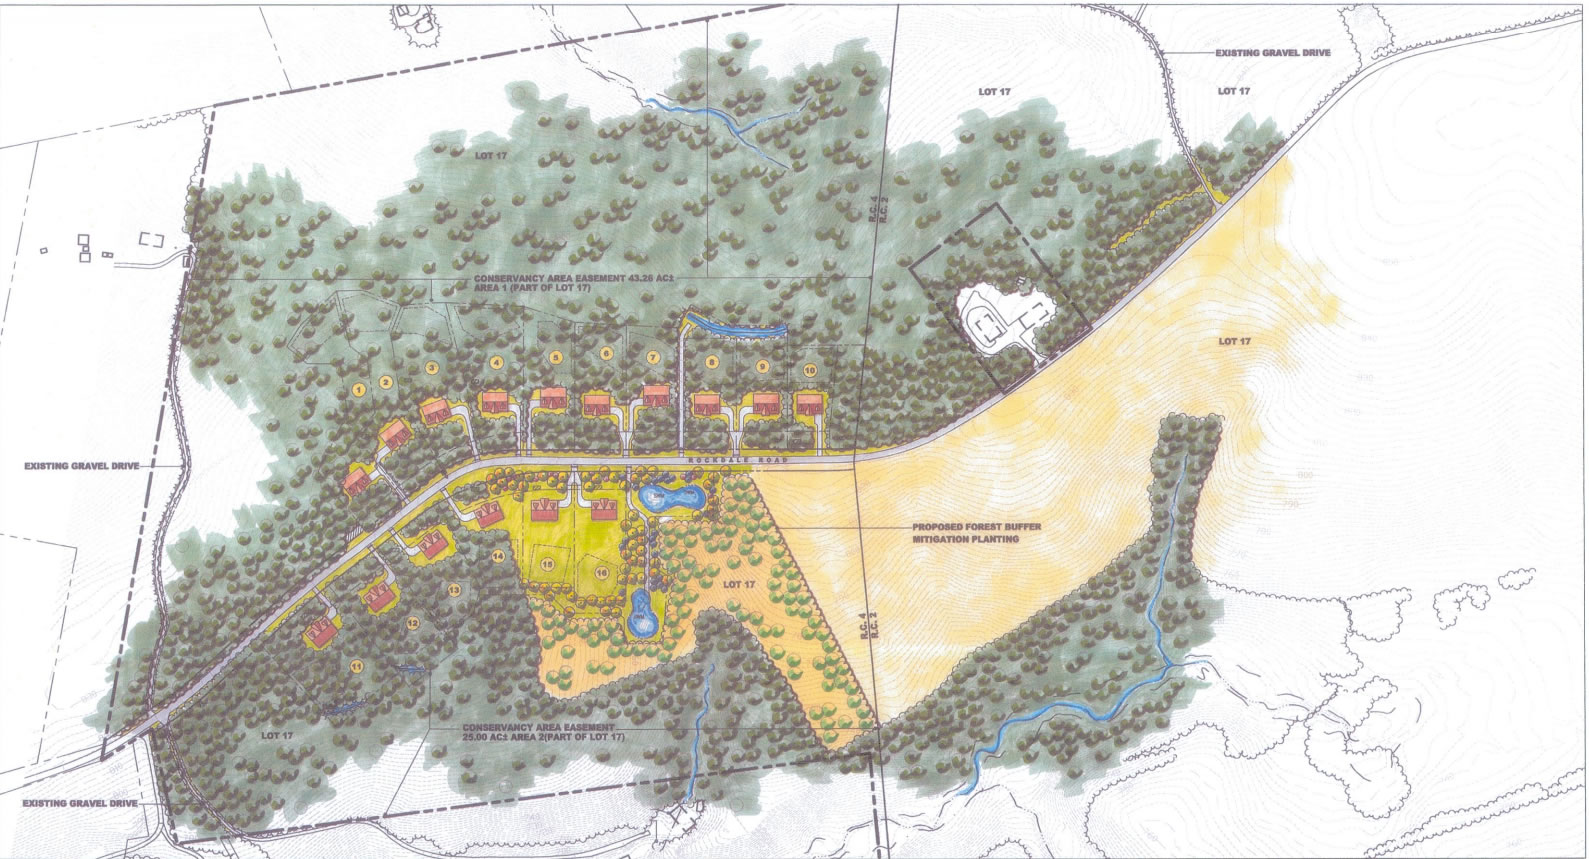 Site Plan for Tracey's Crossing